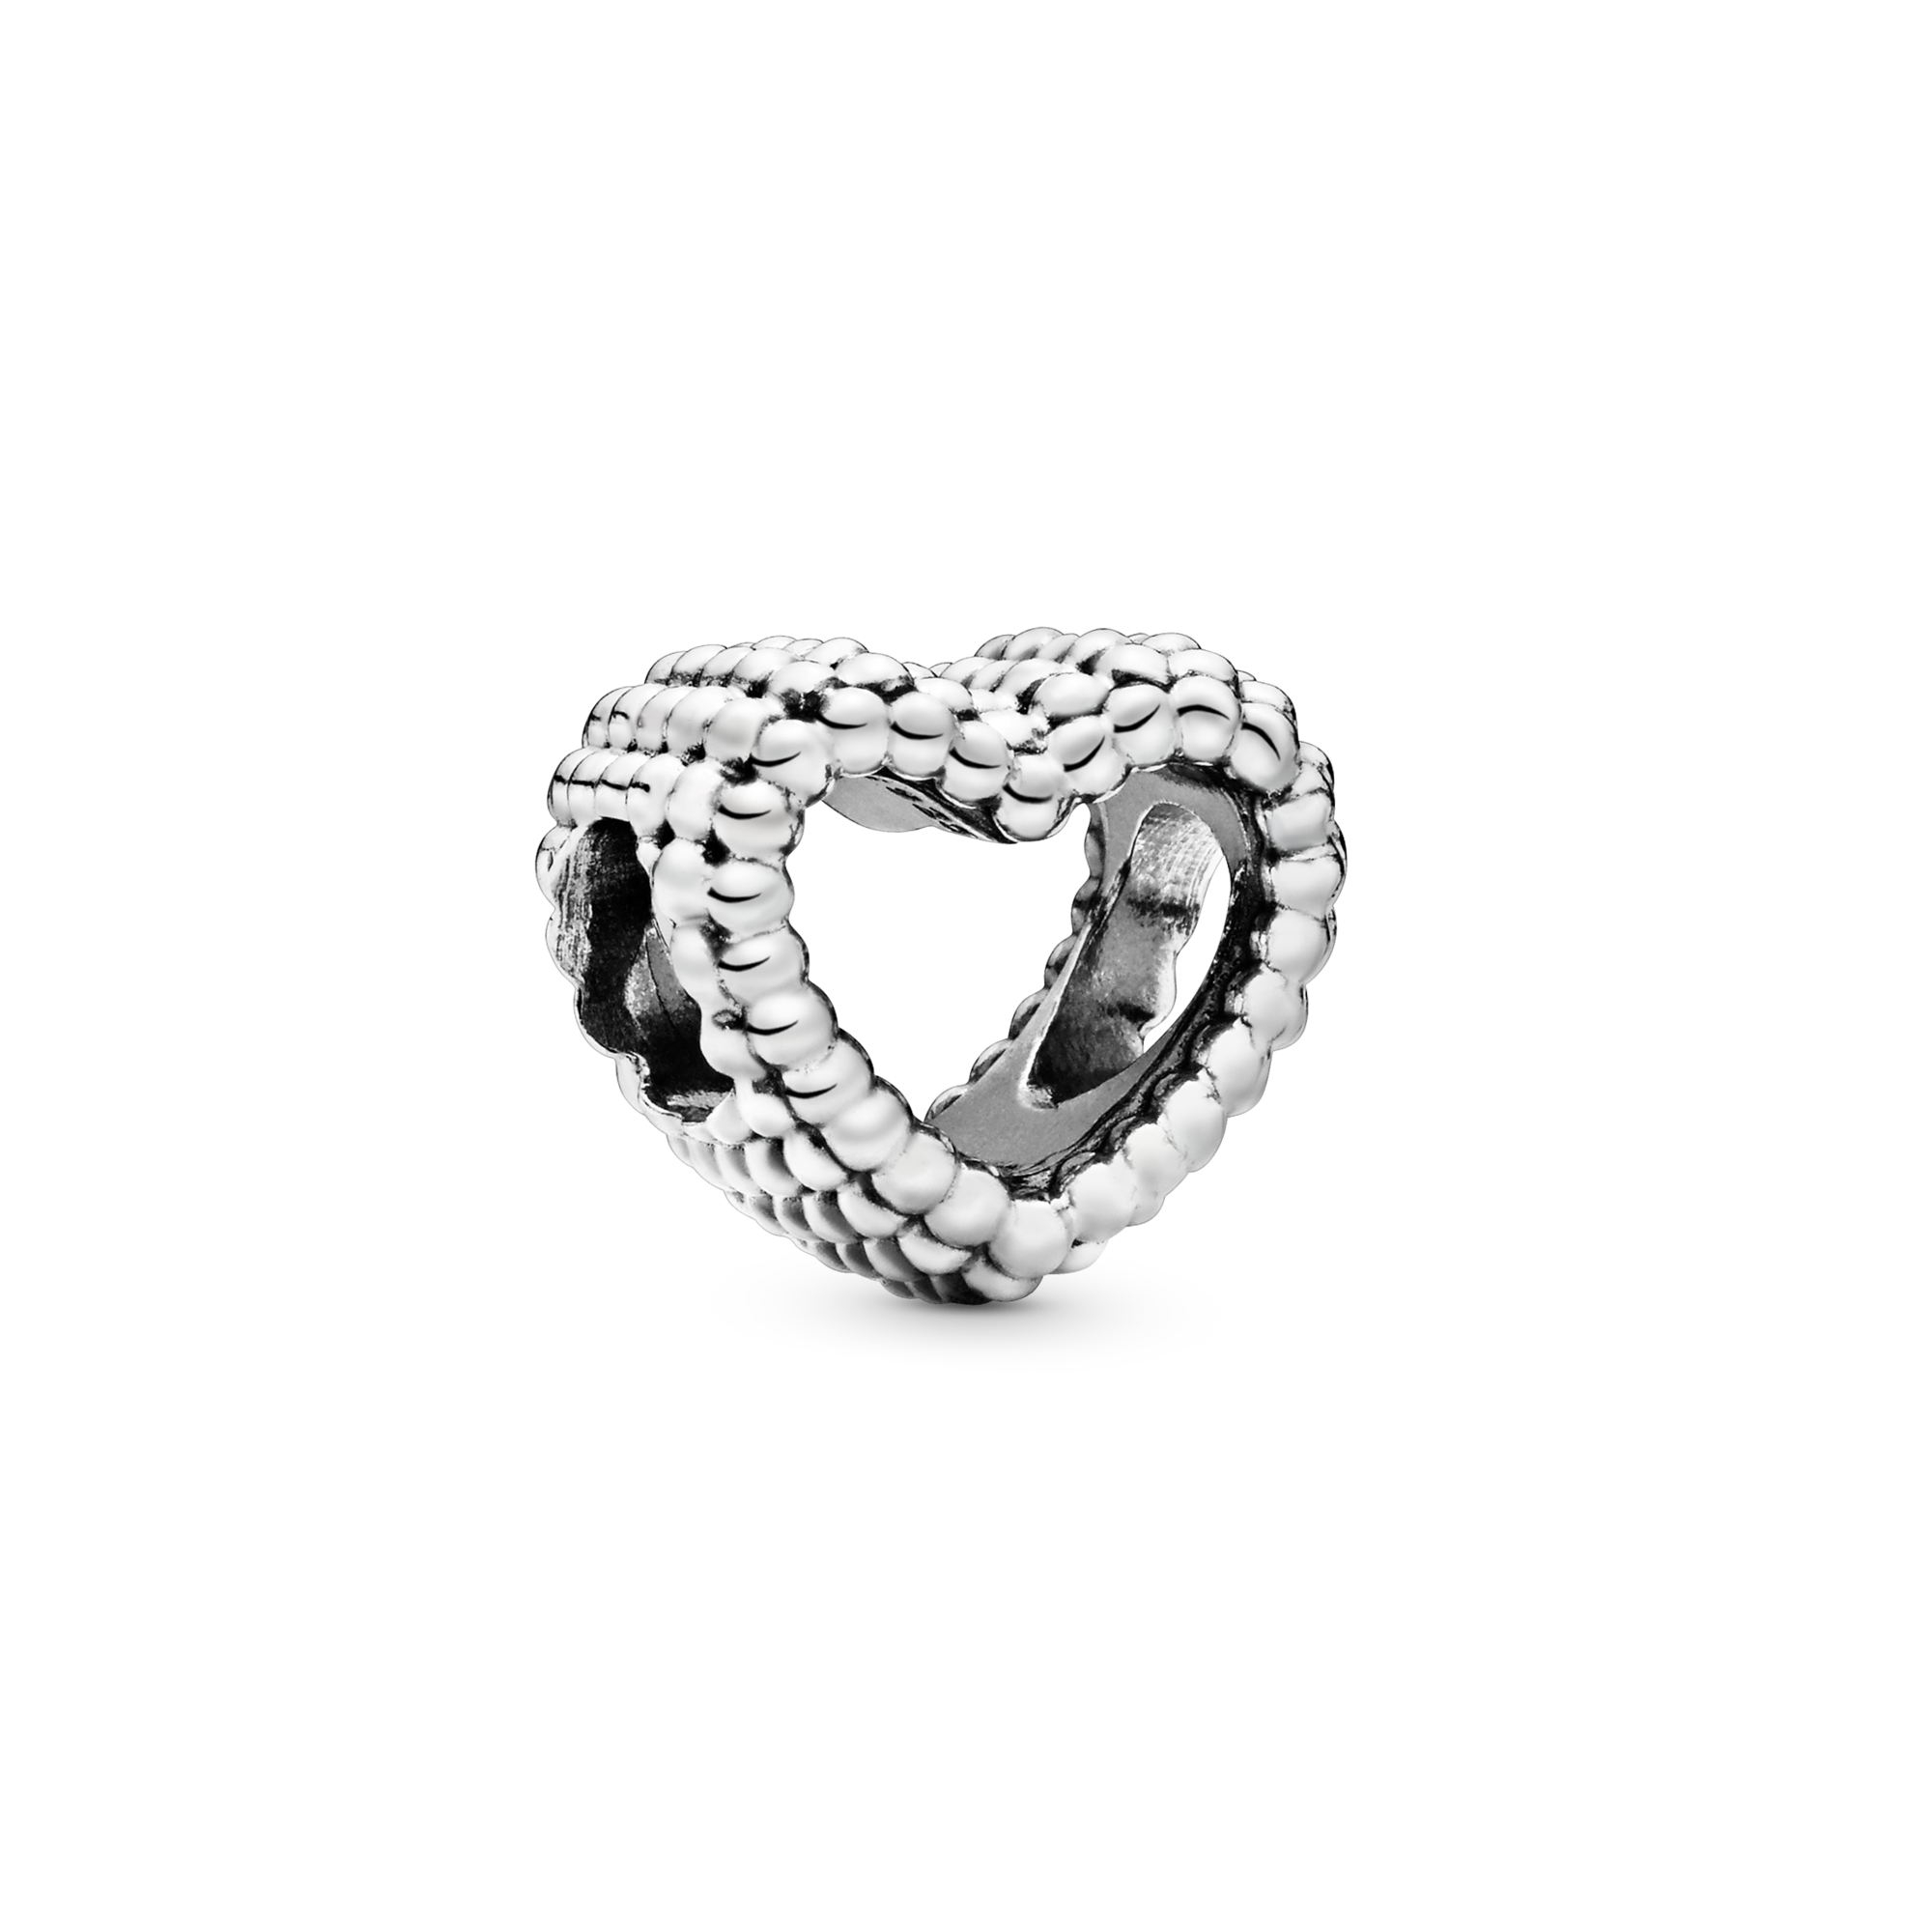 Beaded Open Heart Charm